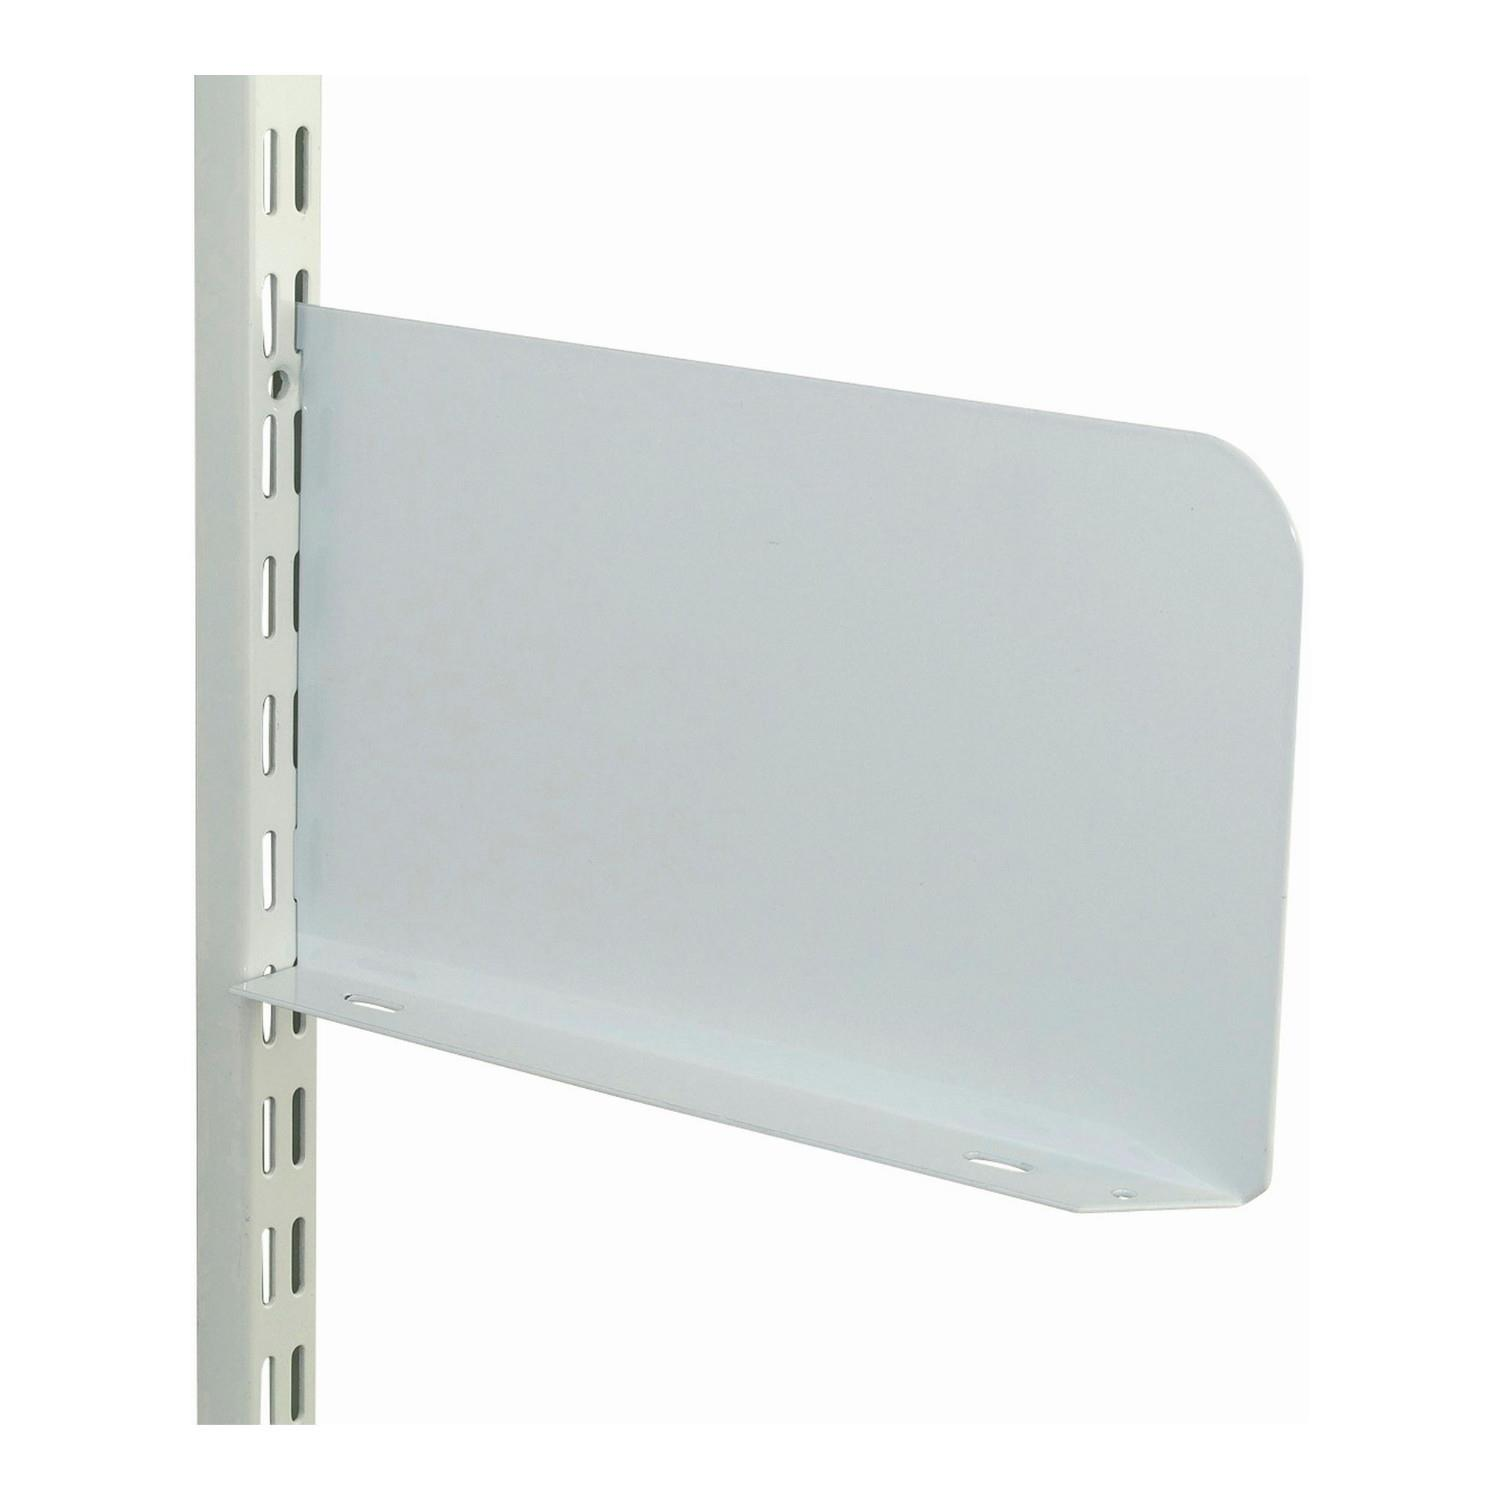 "Sapphire DSE150 Shelf End; Twin Slot System; 150mm (6""); White (WH); Pack (2) (1 Pair)"